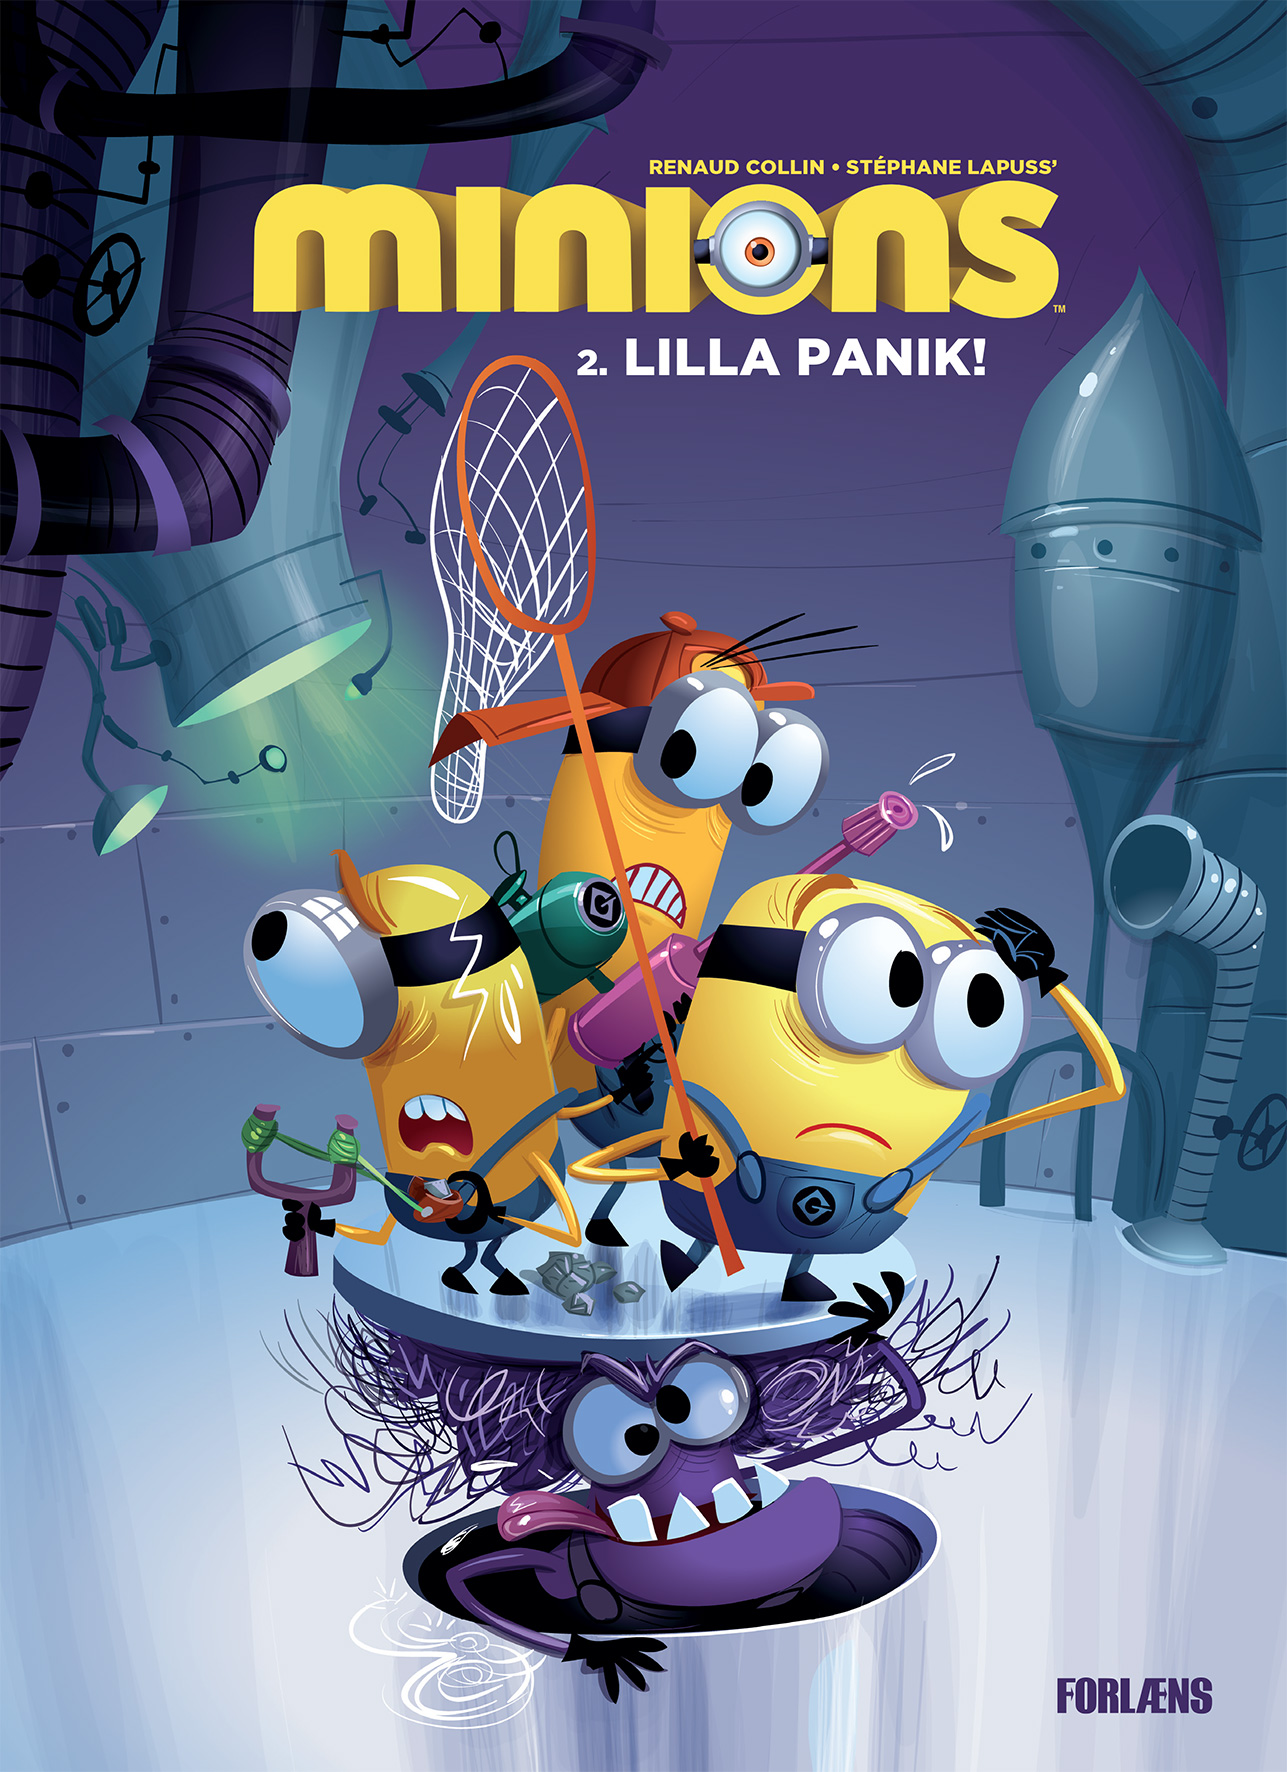 Minions 2 comic-book cover, Danish edition